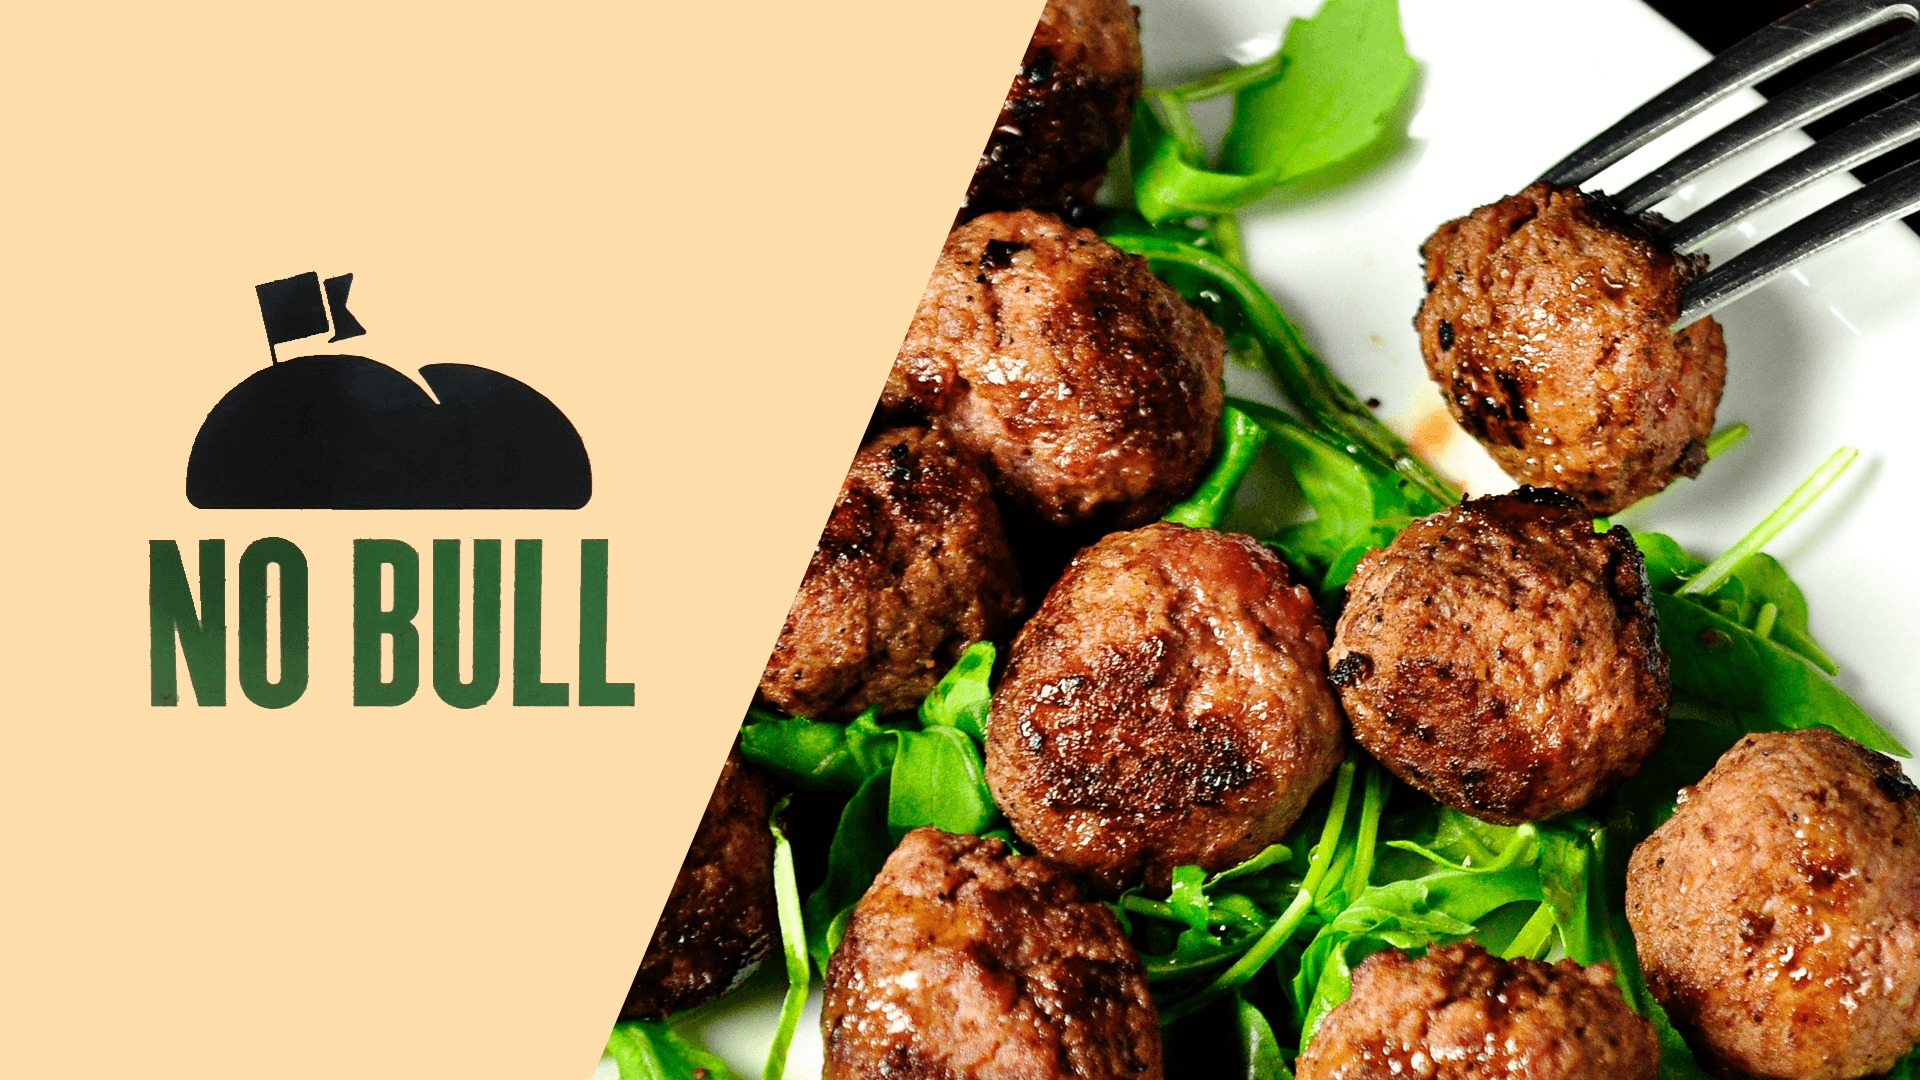 Iceland Supermarket Expands Vegan 'No Bull' Burger Range With Plant-Based Meatballs and Chilli